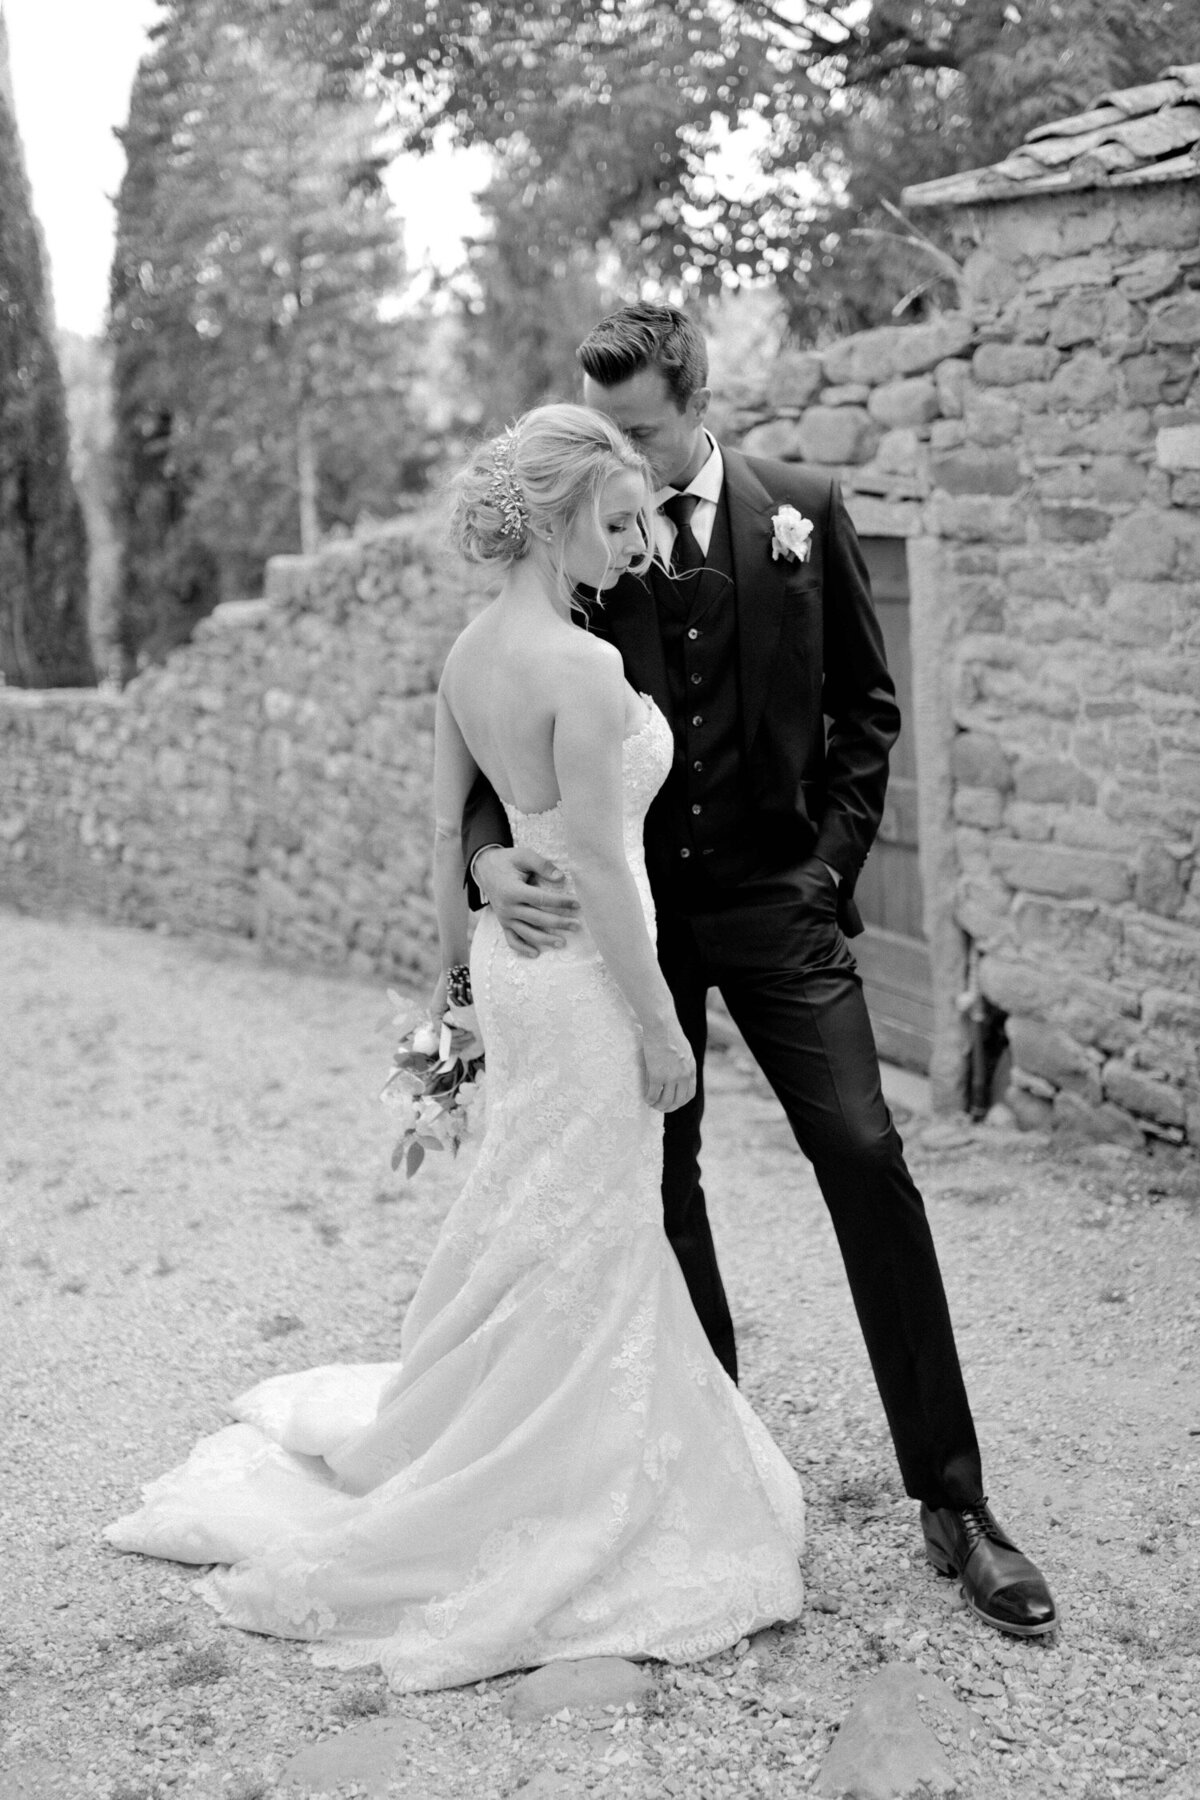 109_Tuscany_Luxury_Wedding_Photographer (119 von 215)_So thankful to be a luxury destination wedding photographer in Tuscany! Claire and James invited their beloved family & friends from London to their luxury wedding in Tuscany.